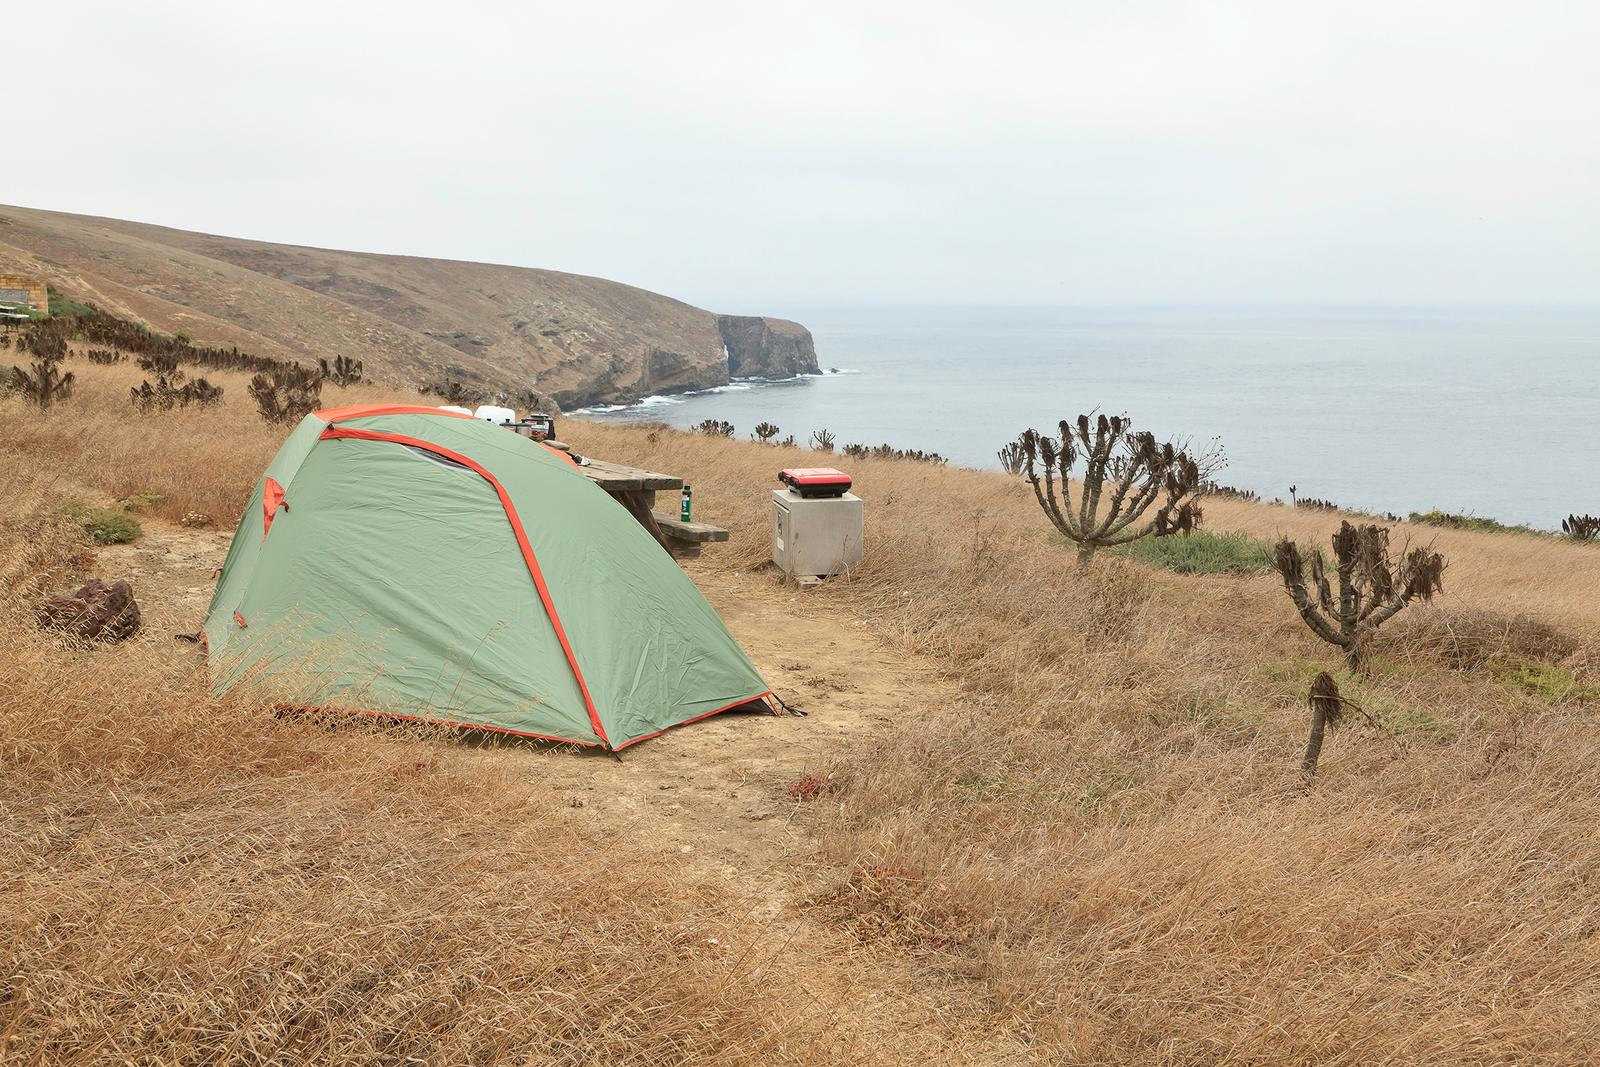 Tent sitting in dried grass on a ocean bluff overlooking the coastline.Campground, Santa Barbara Island